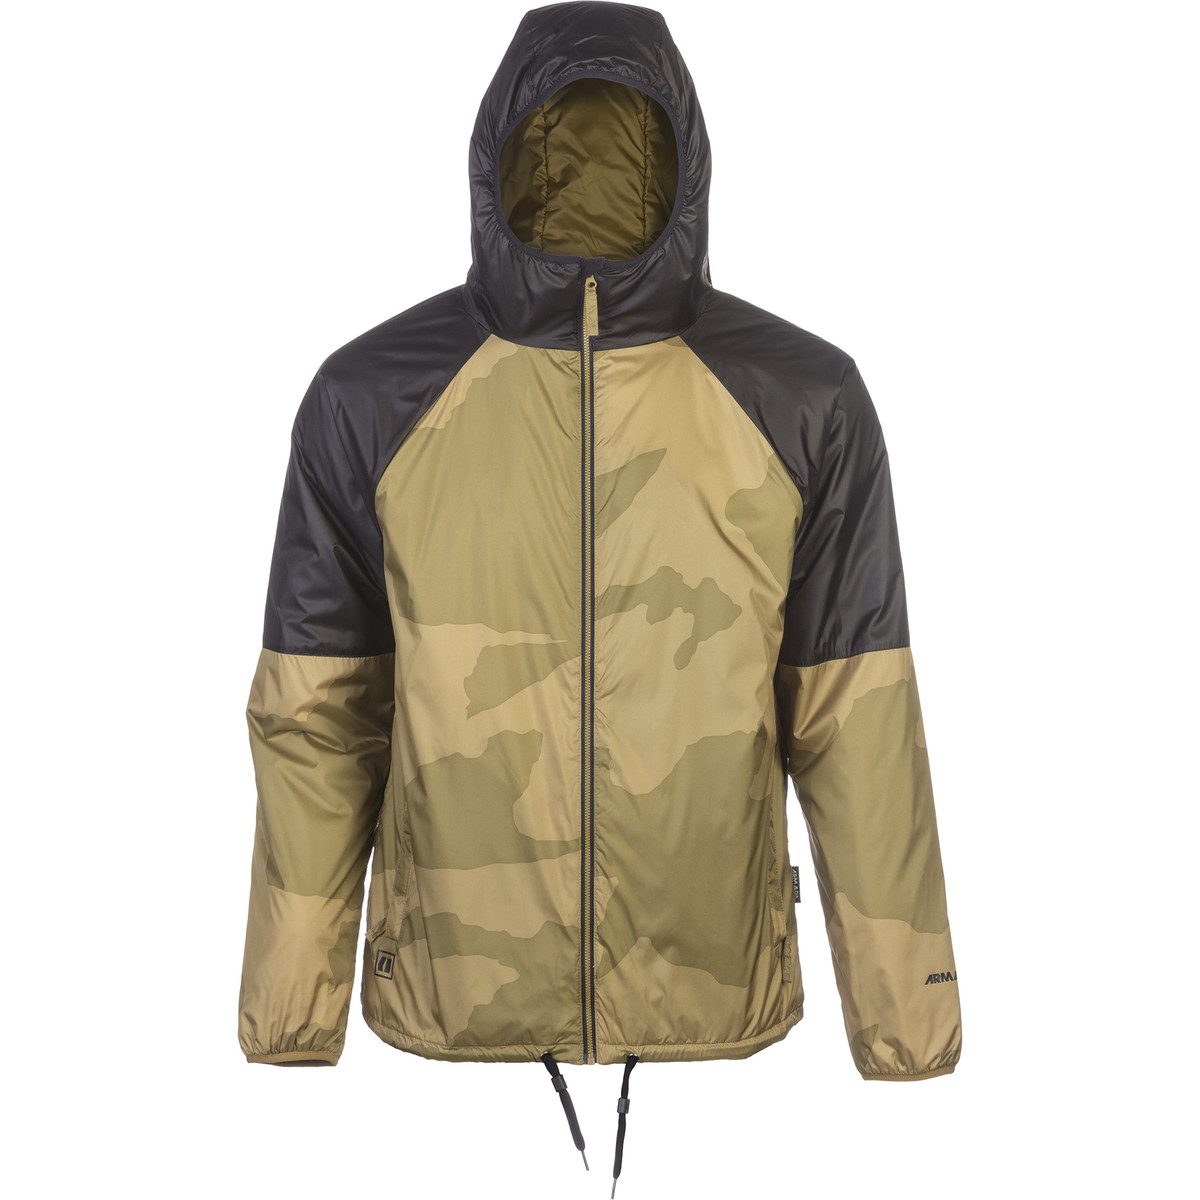 Armada Gremlin Insulated Jacket